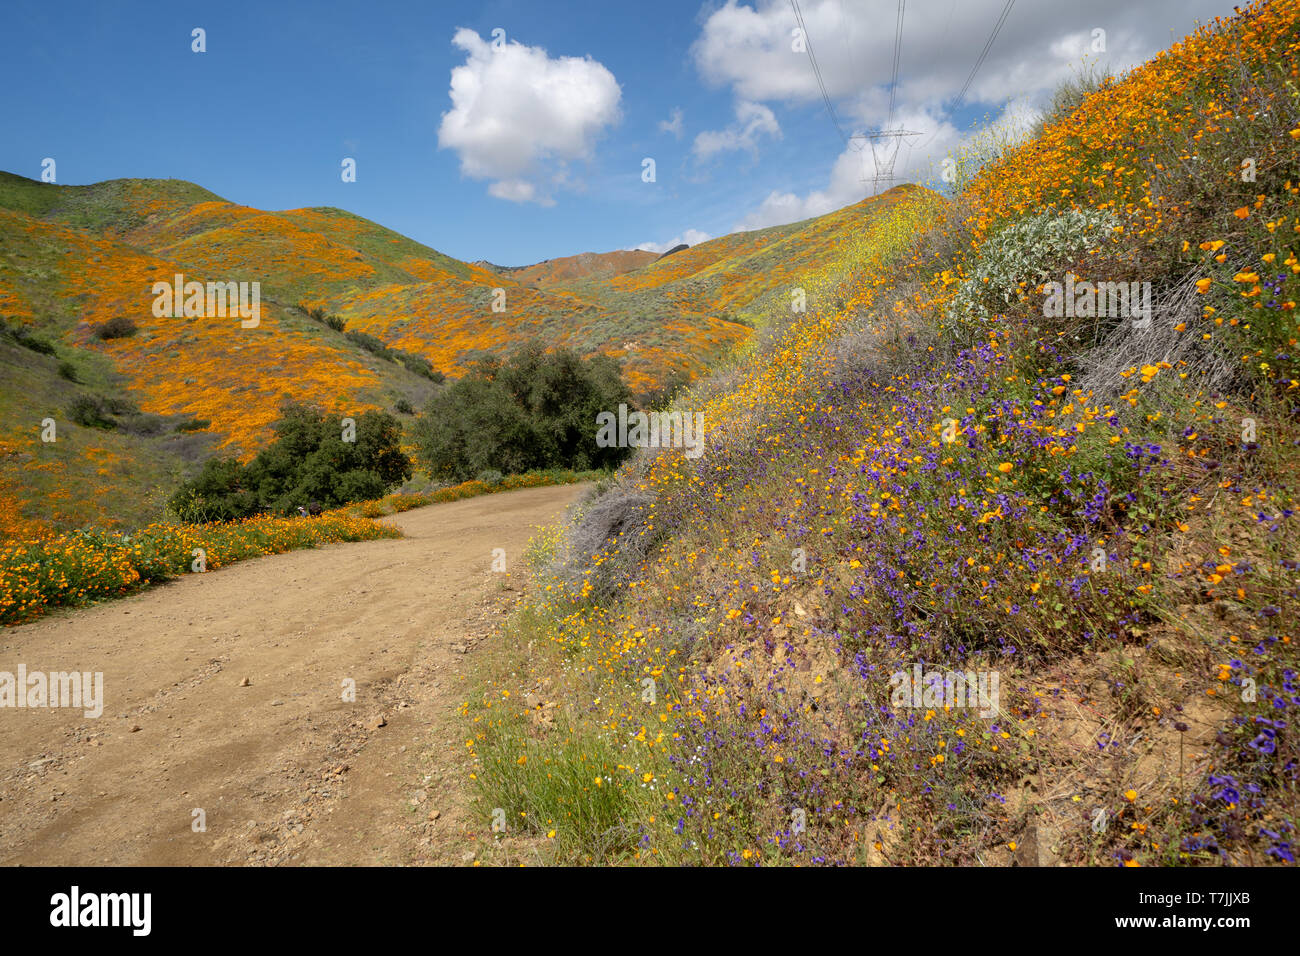 Trail of Walker Canyon during the Poppy wildflower superbloom - Stock Image